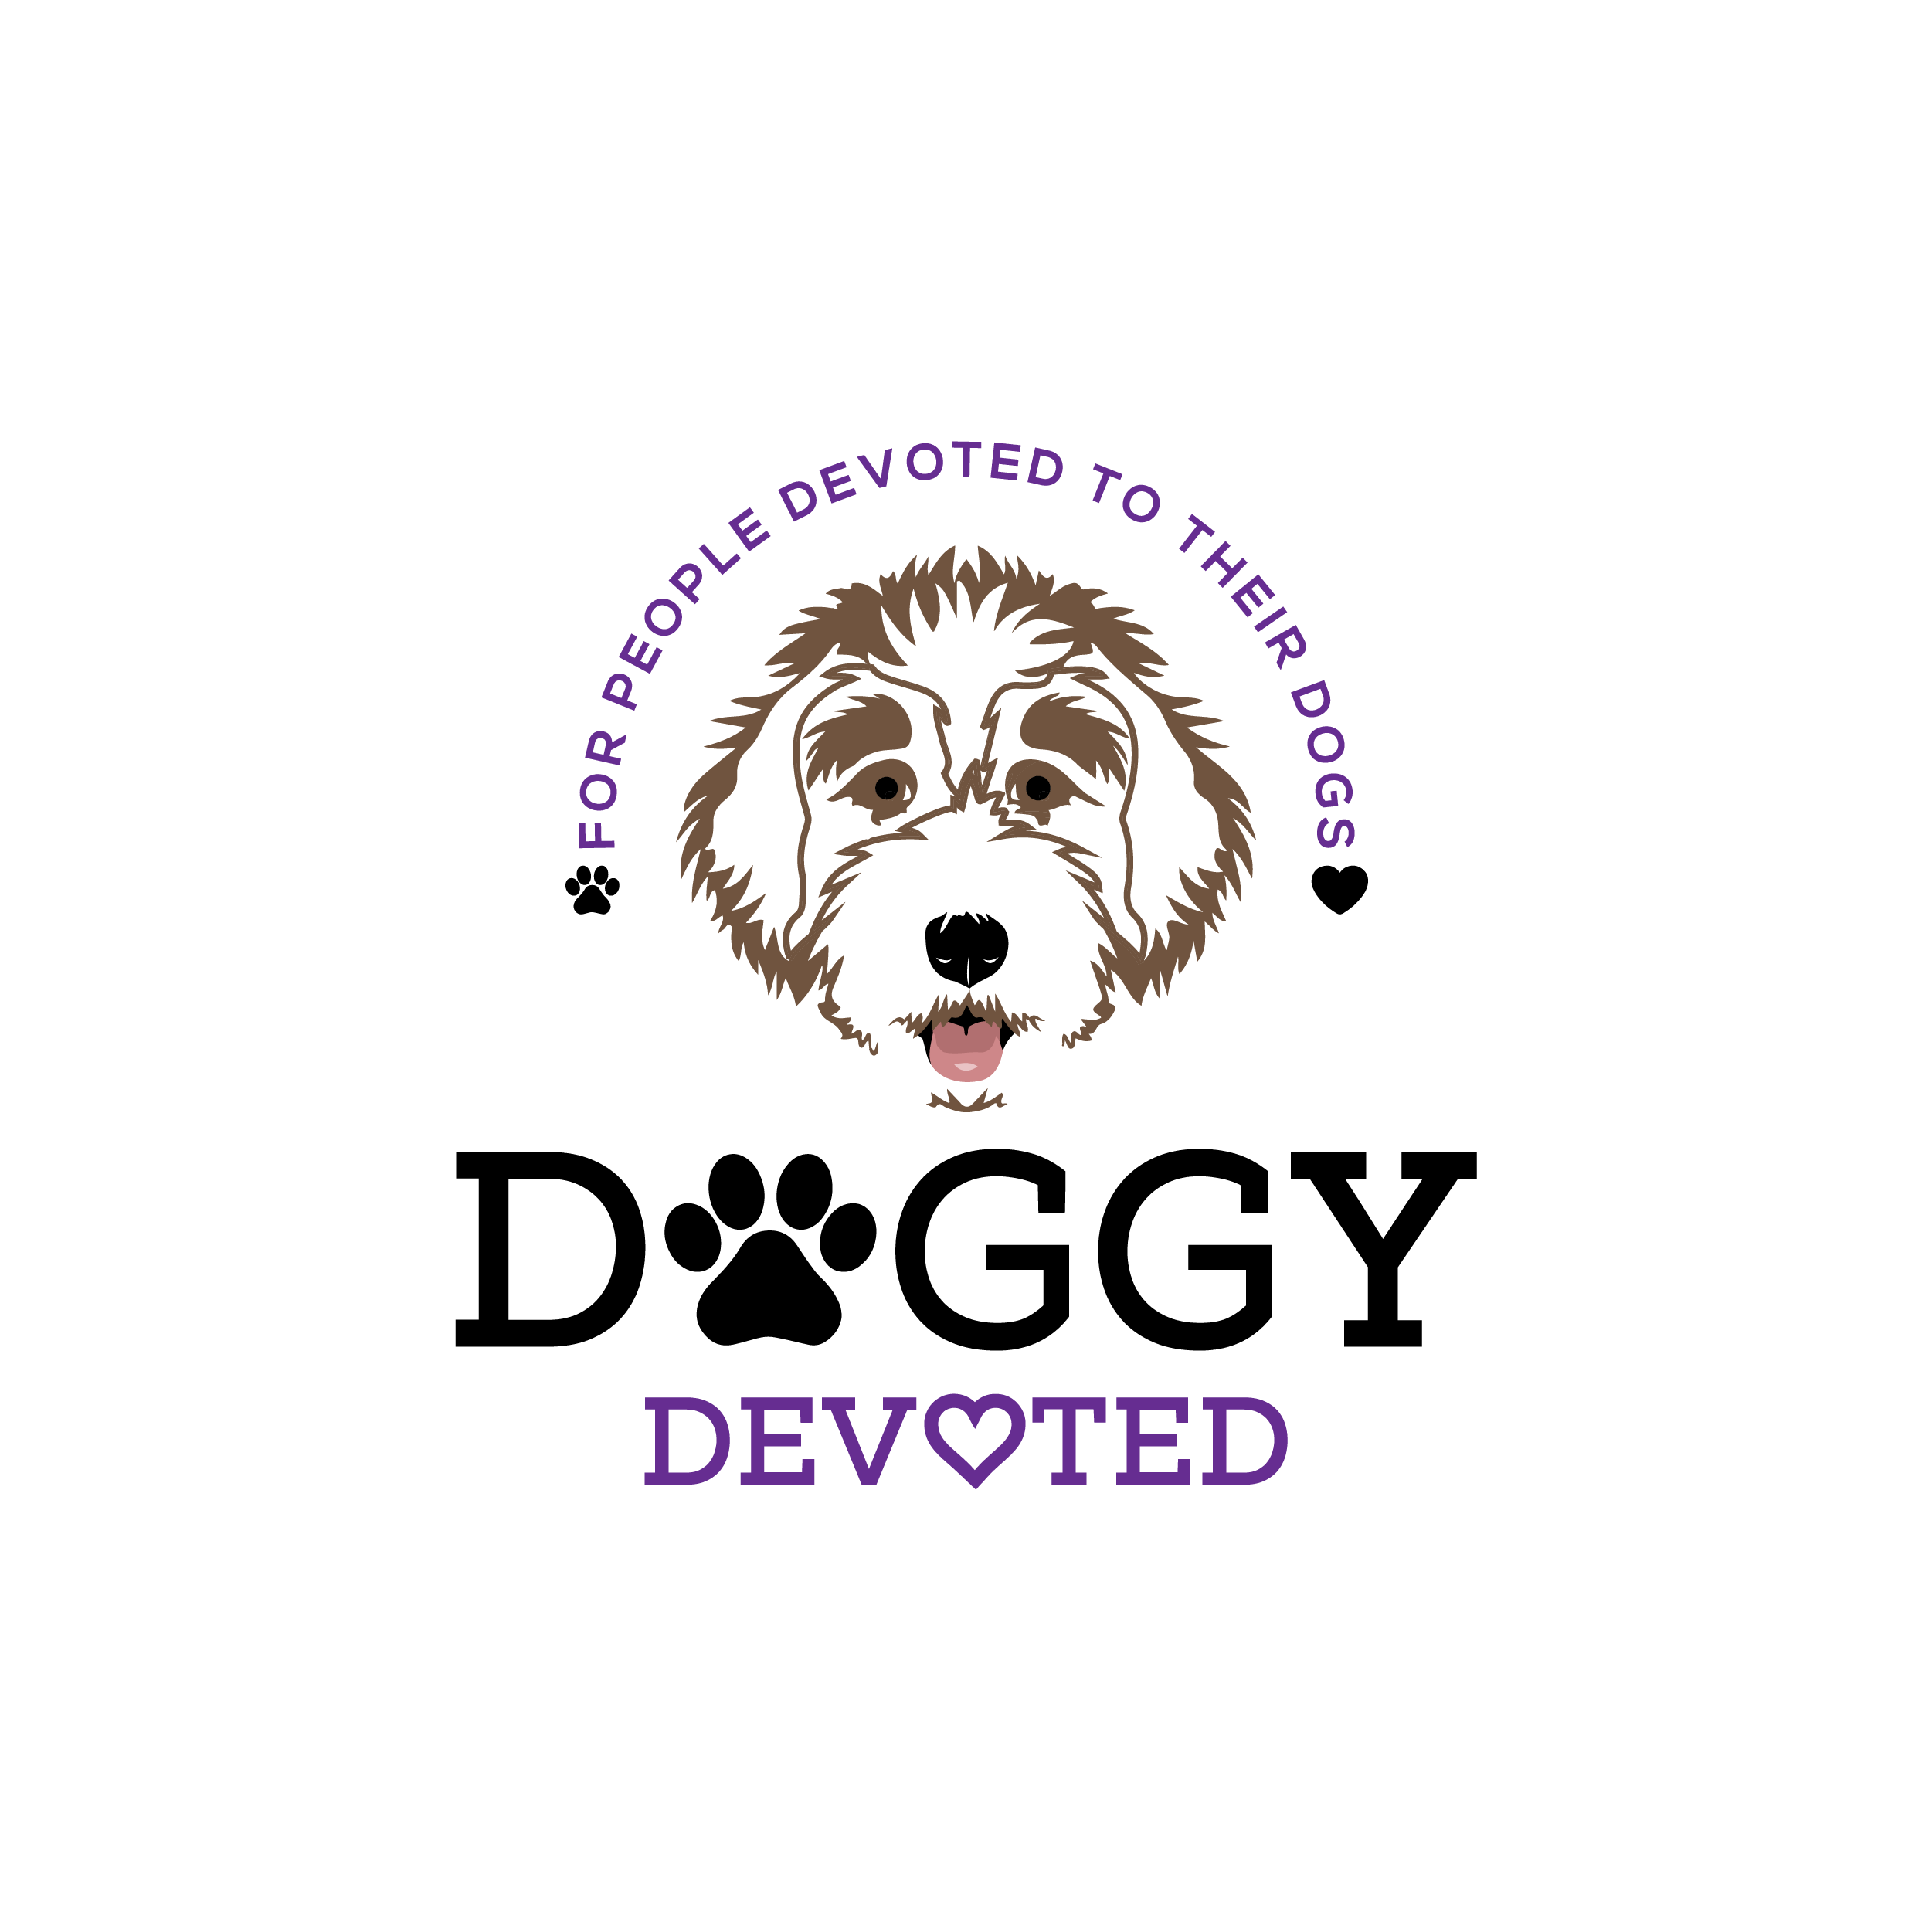 Doggy Devoted